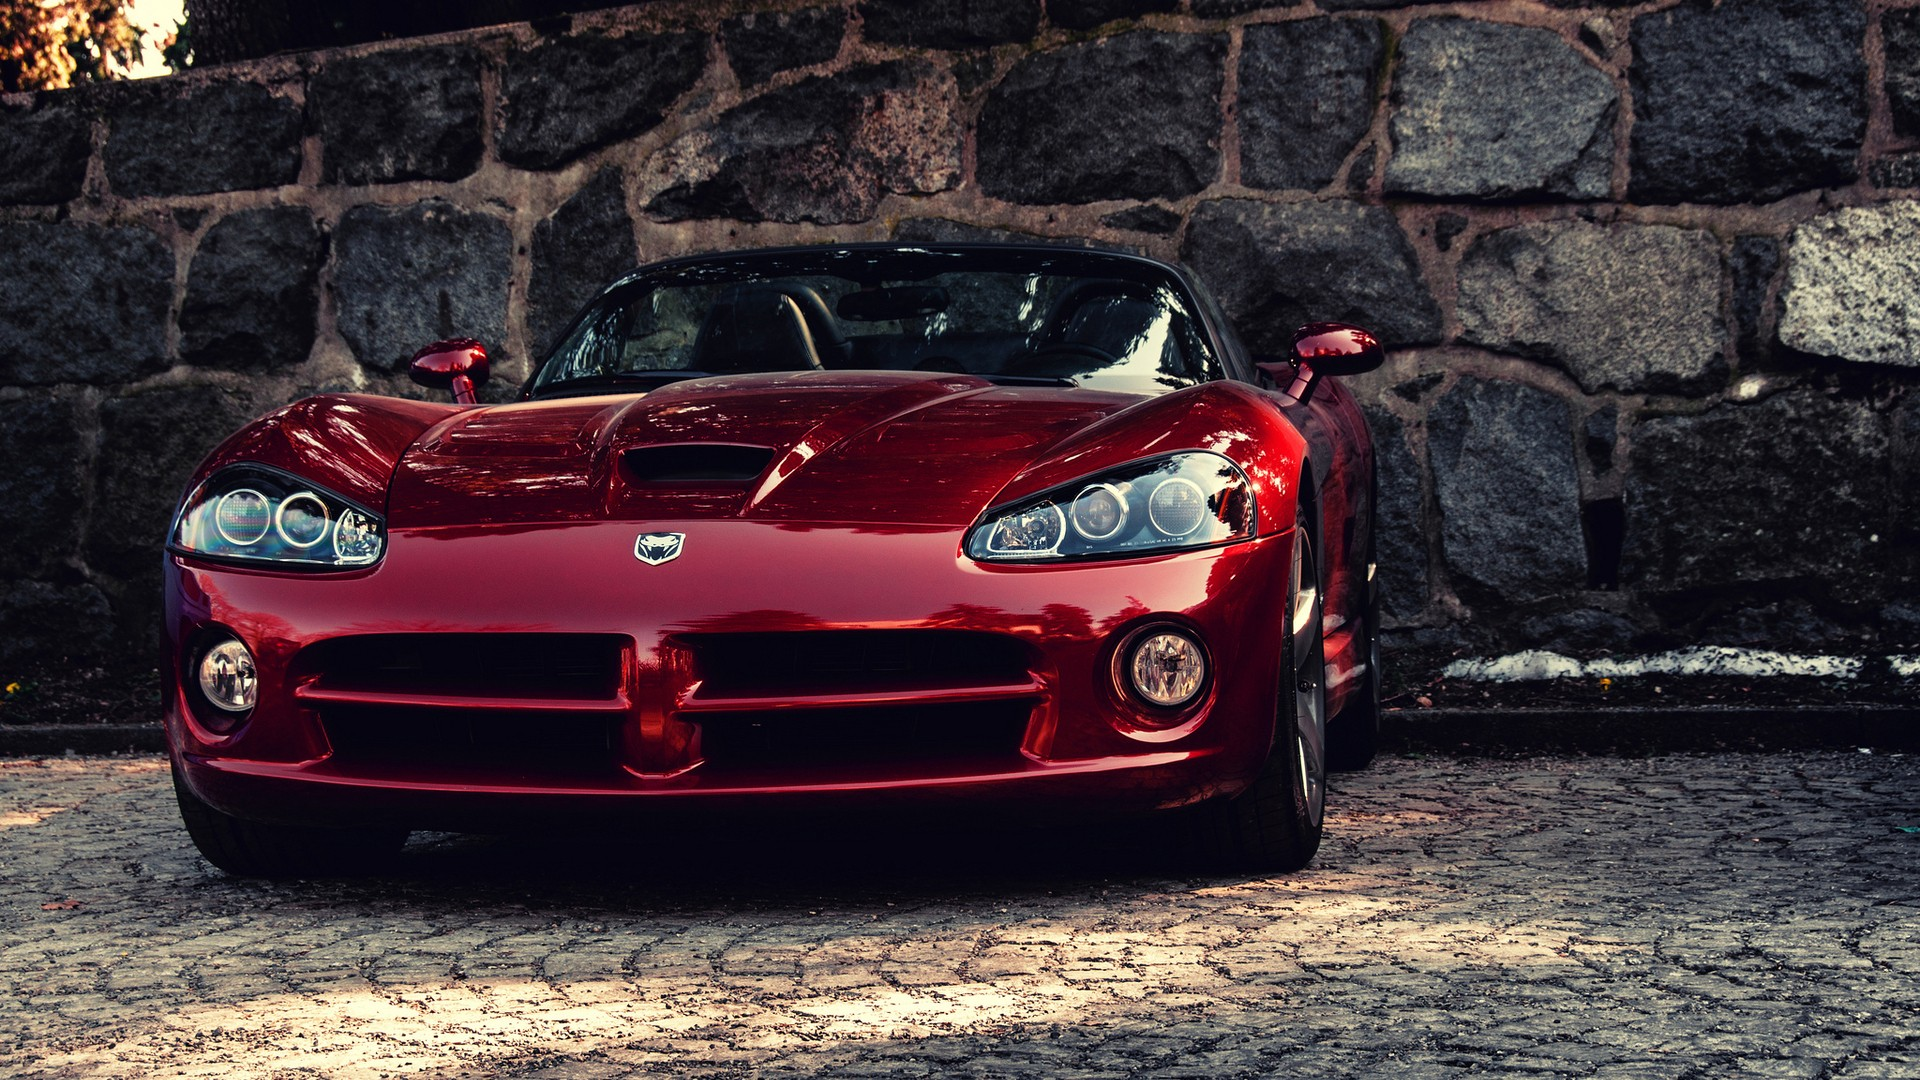 Wallpaper Dodge Viper, red sports car, front view